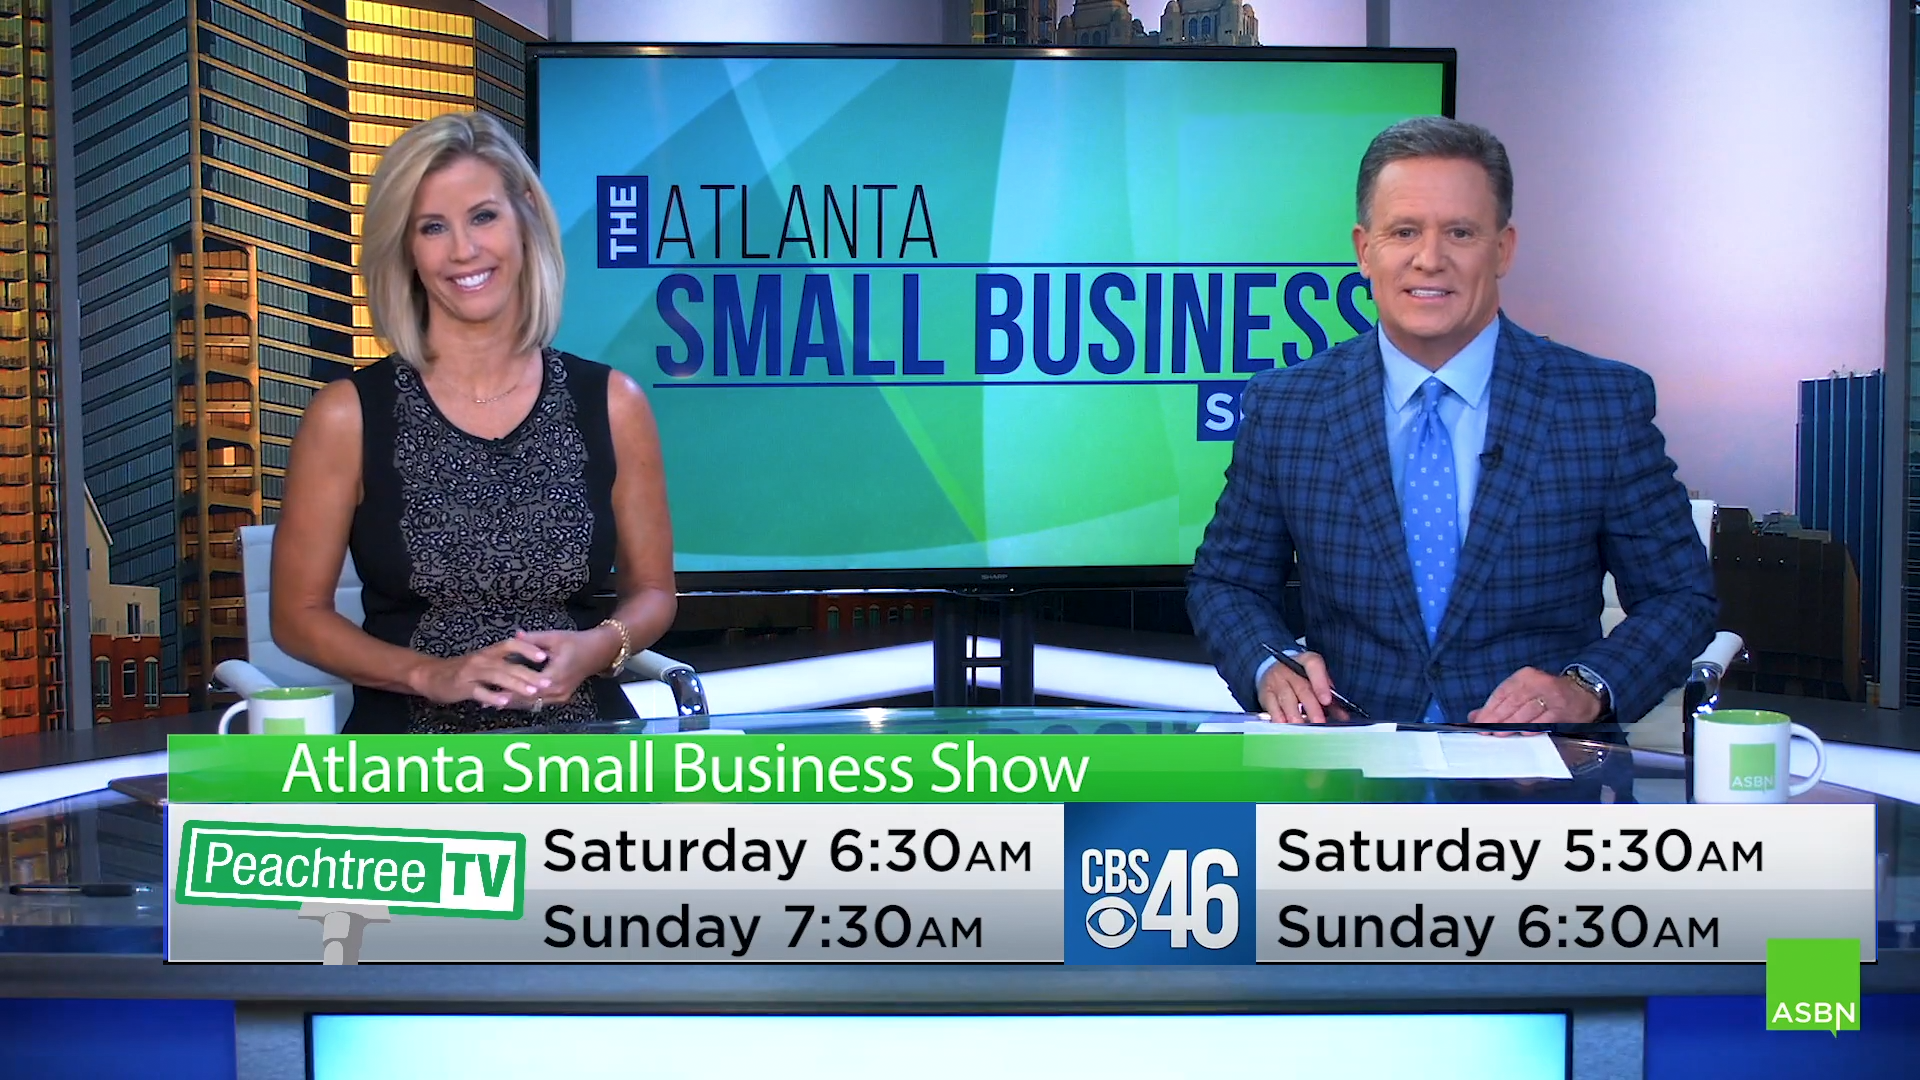 Atlanta Small Business Network | Your Resource for Small